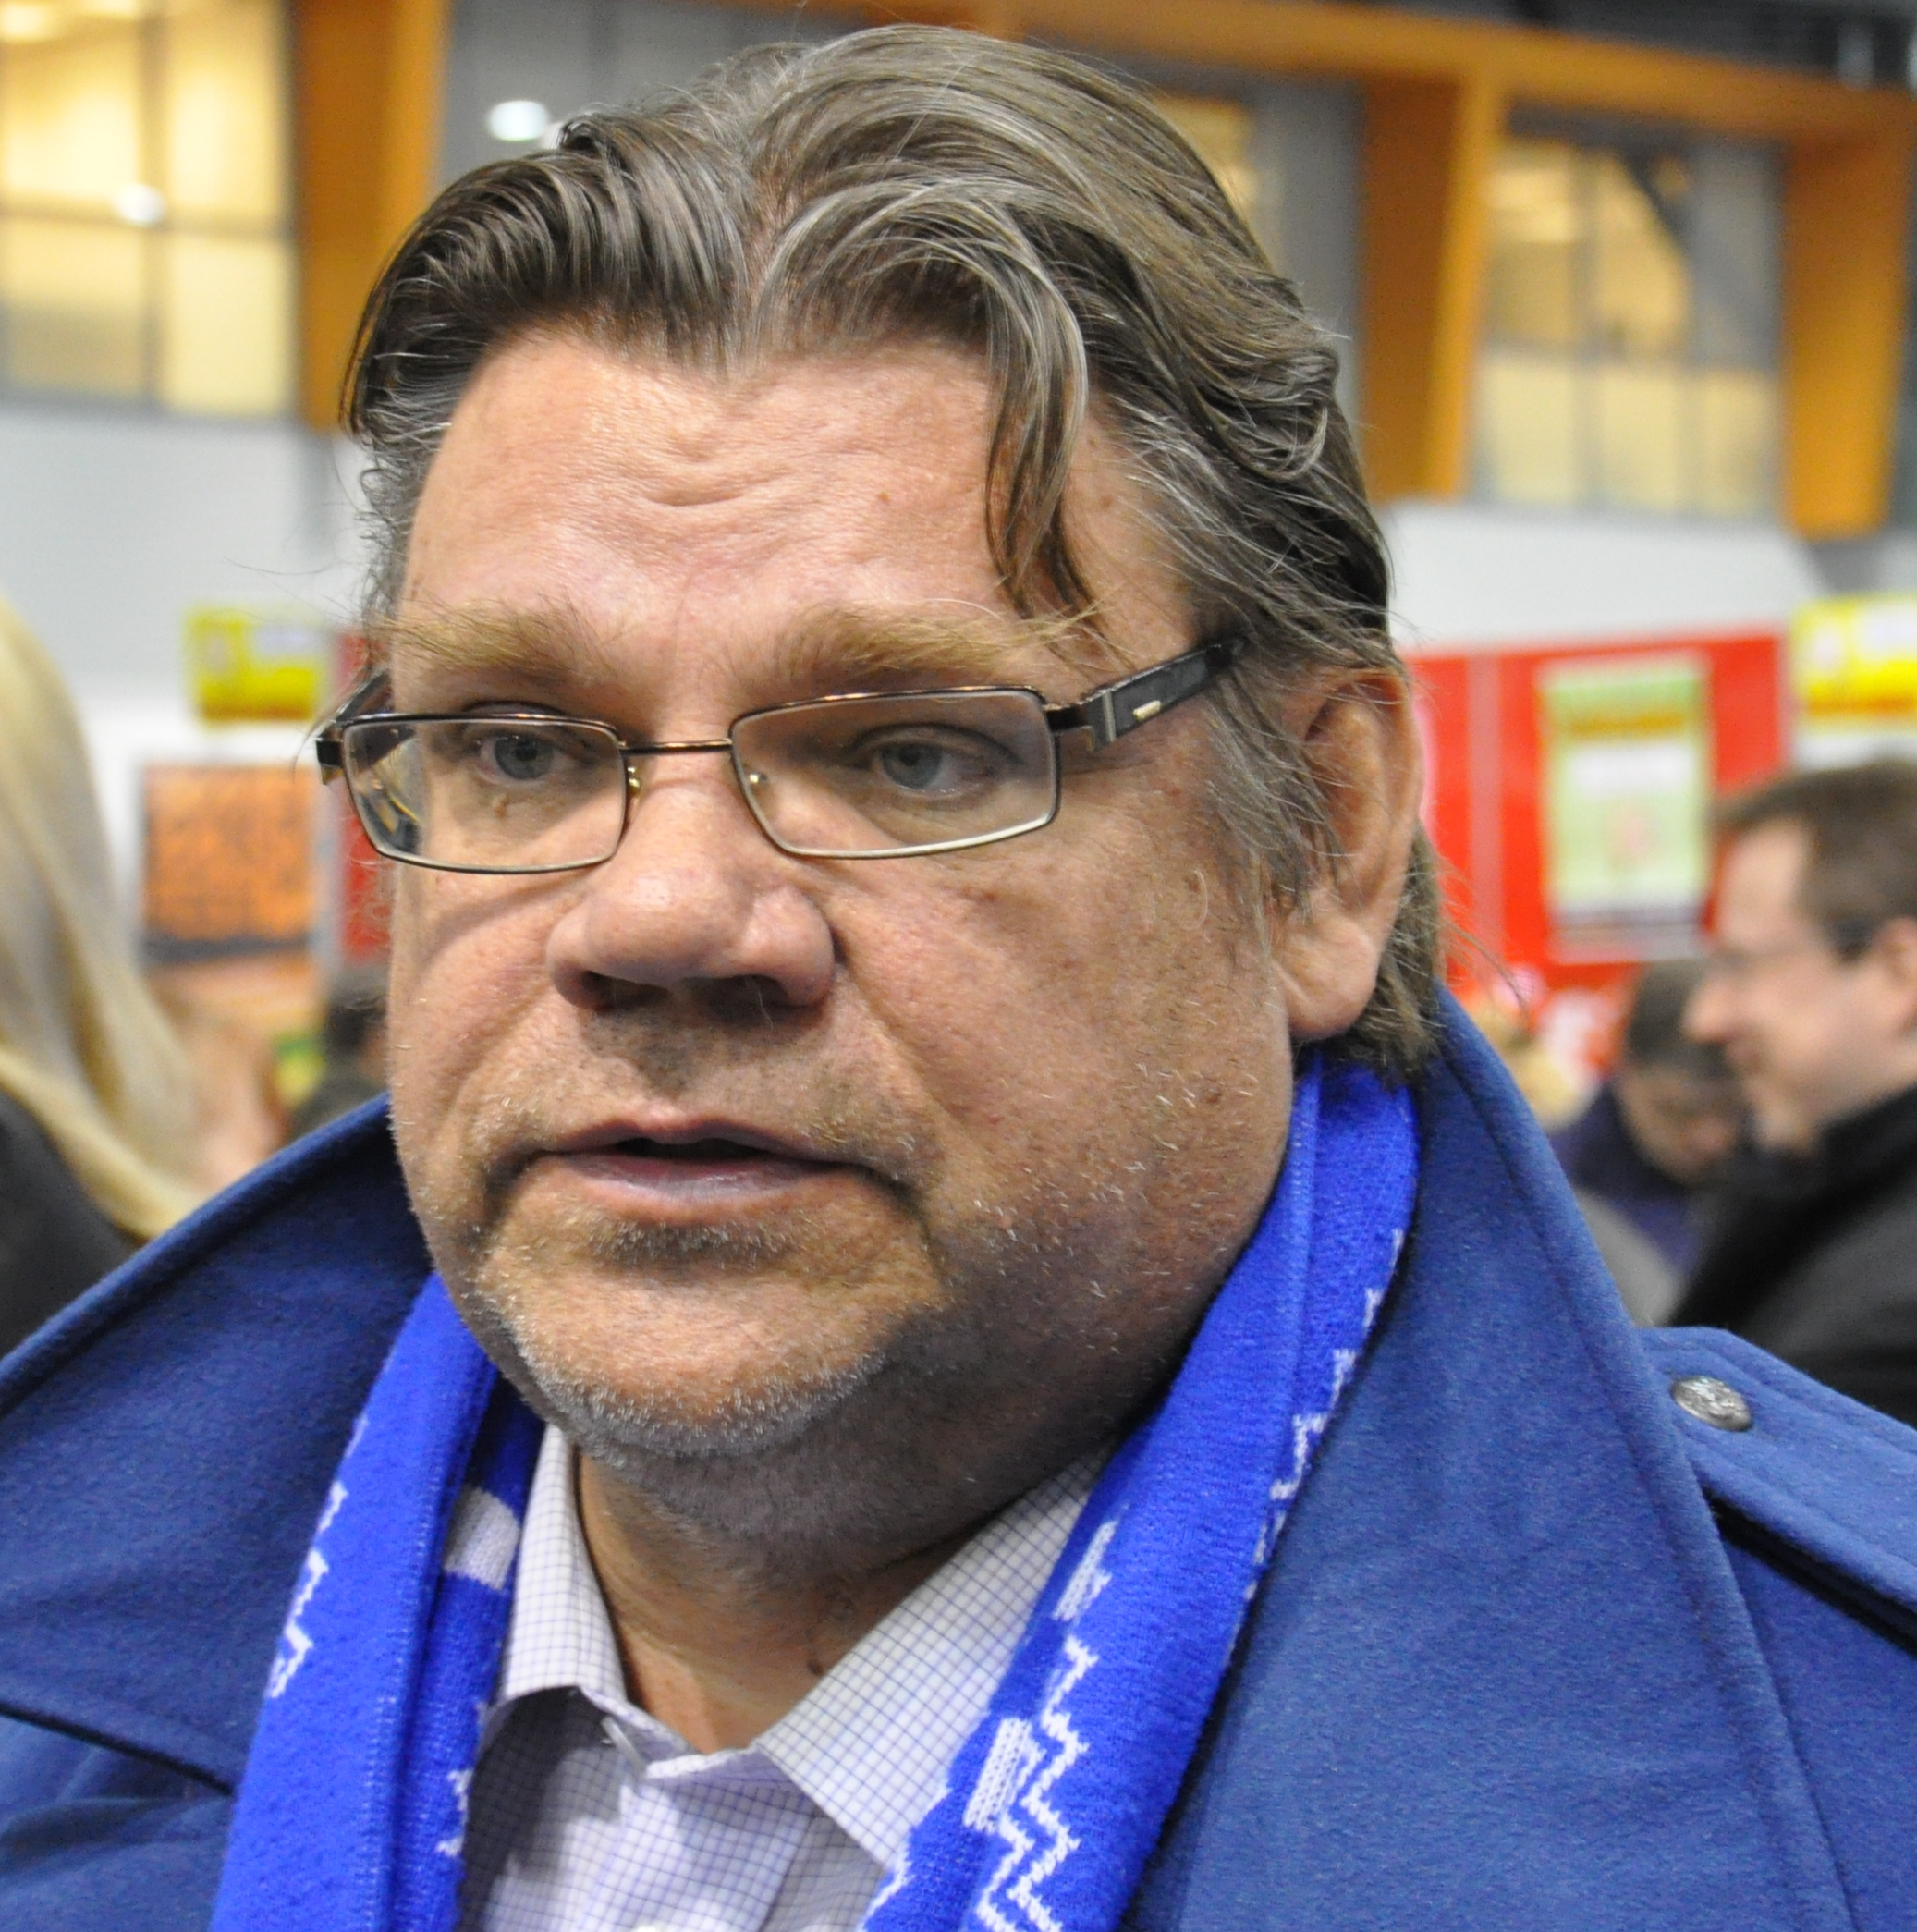 File:Timo Soini.jpg - Wikimedia Commons: https://commons.wikimedia.org/wiki/File:Timo_Soini.jpg